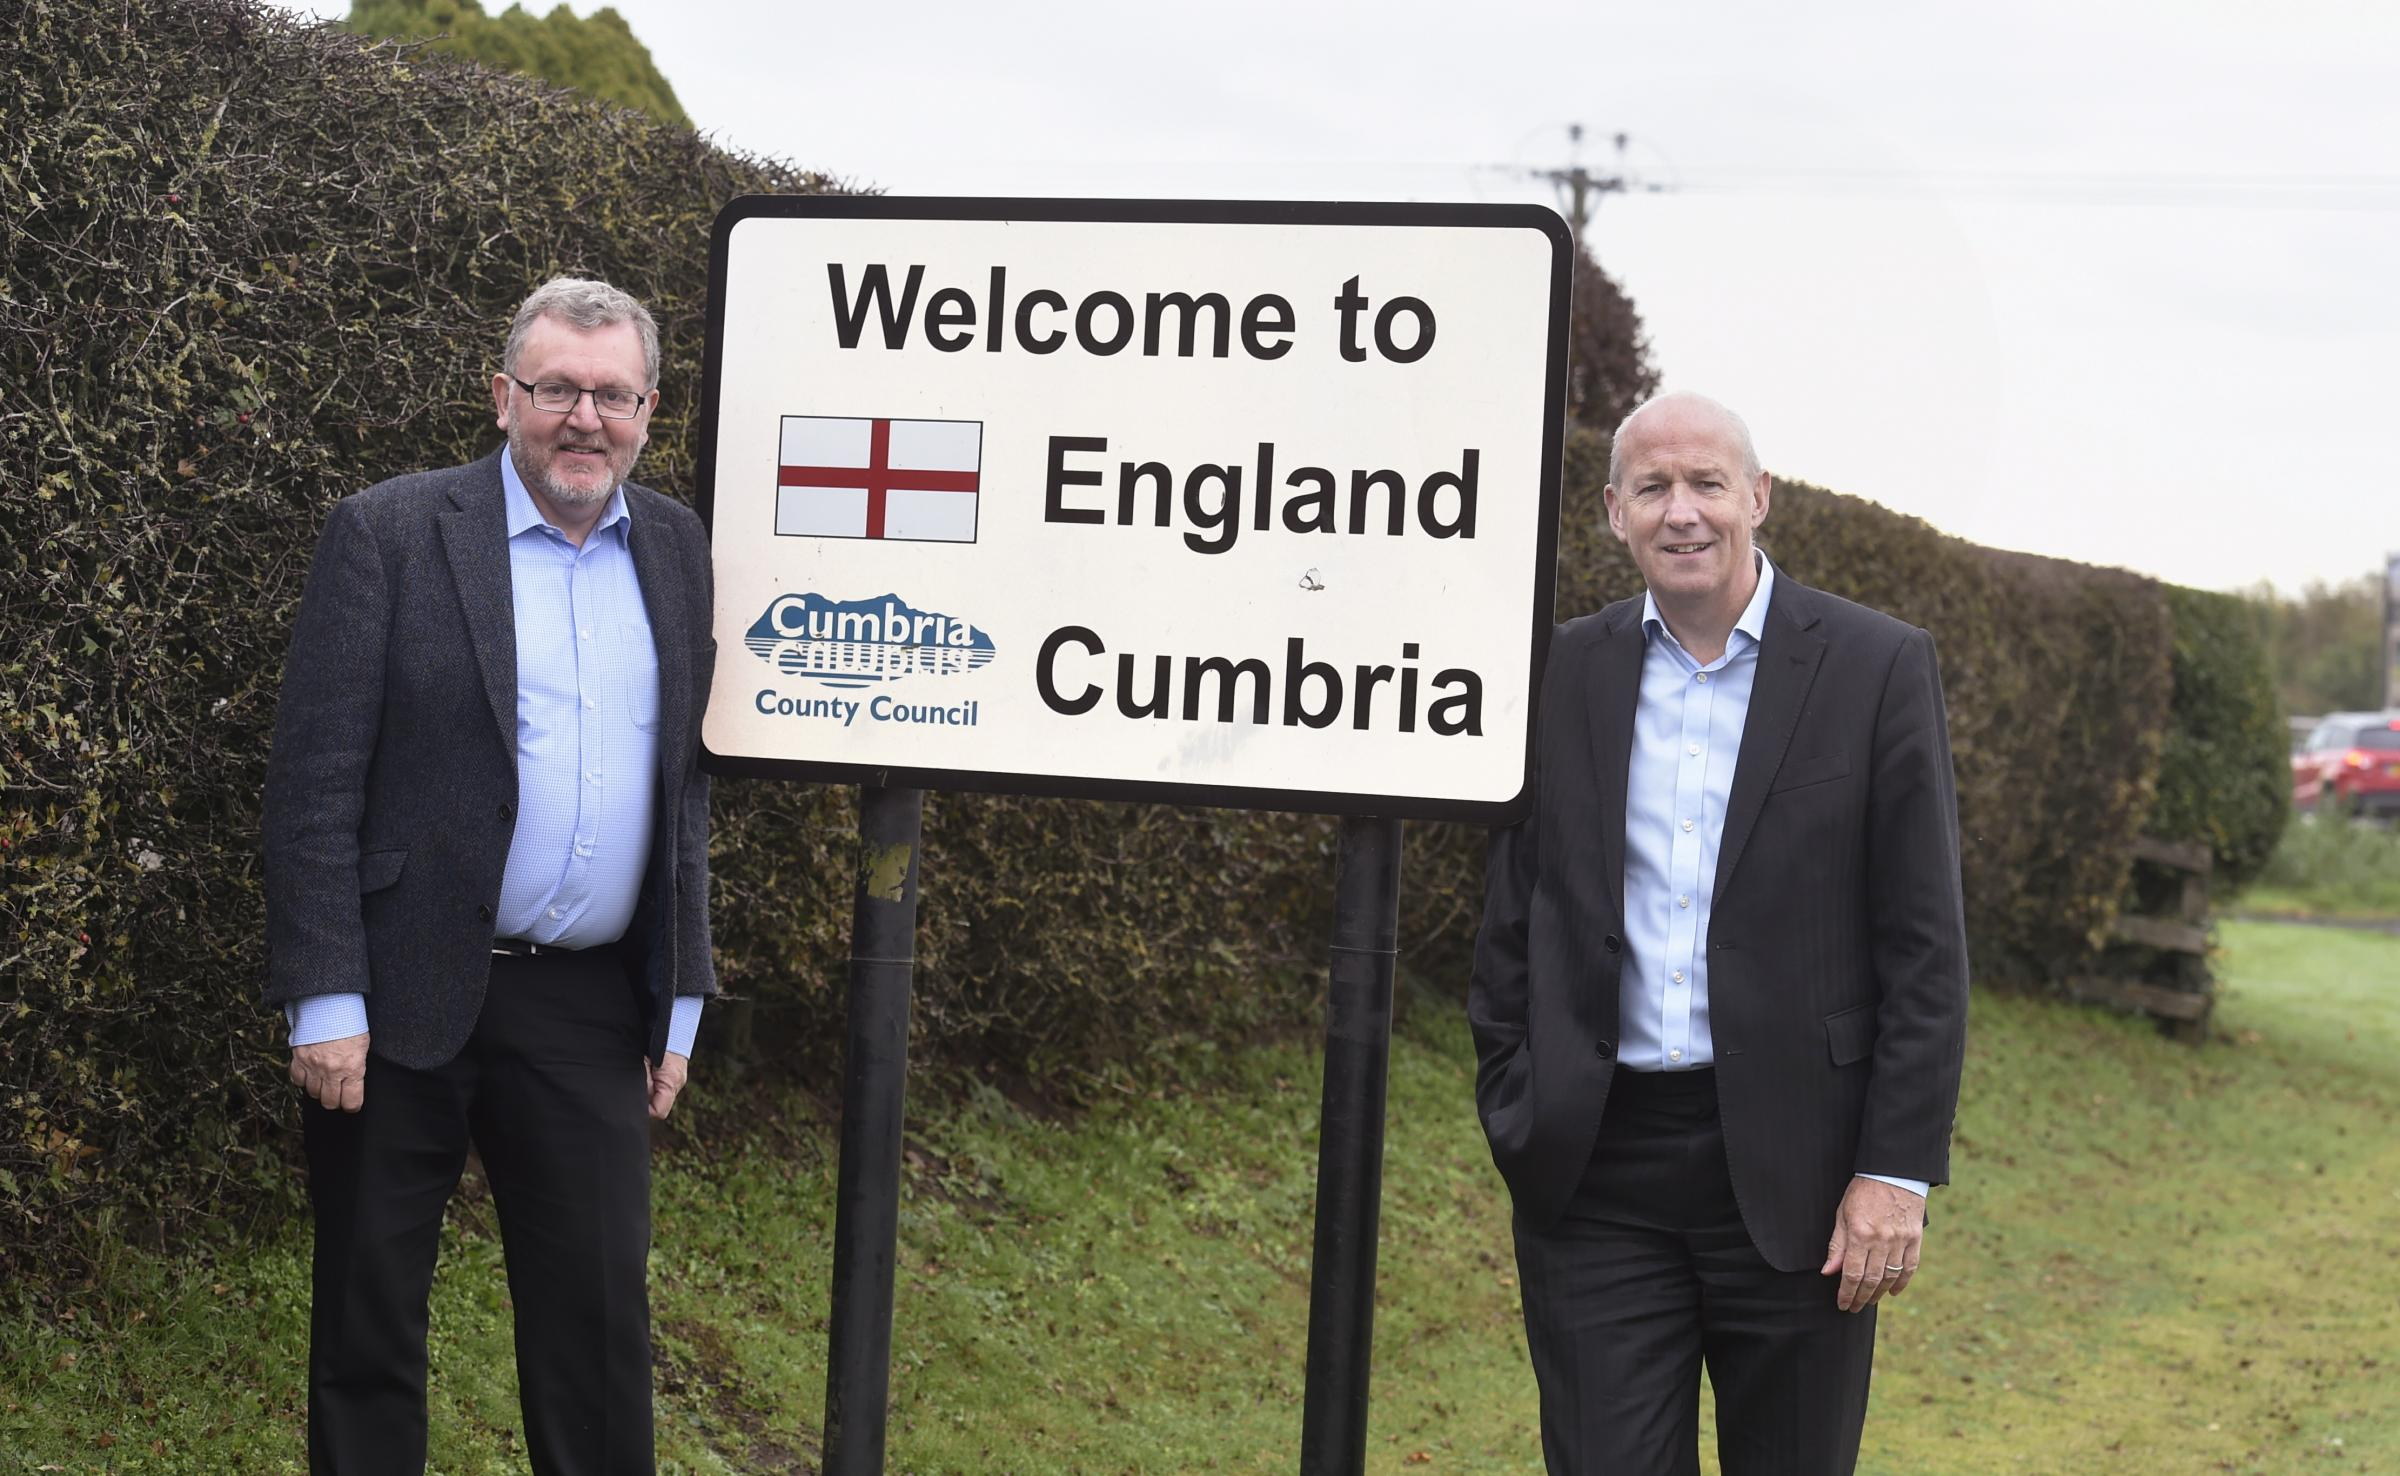 Secretary of State for Scotland and Conservative MP for Dumfriesshire, Clydesdale and Tweeddale David Mundell, left, and UK Government Borderlands Champion and Conservative MP for Carlisle John Stevenson, on the scottish/english border in Gretna, 19 Octob